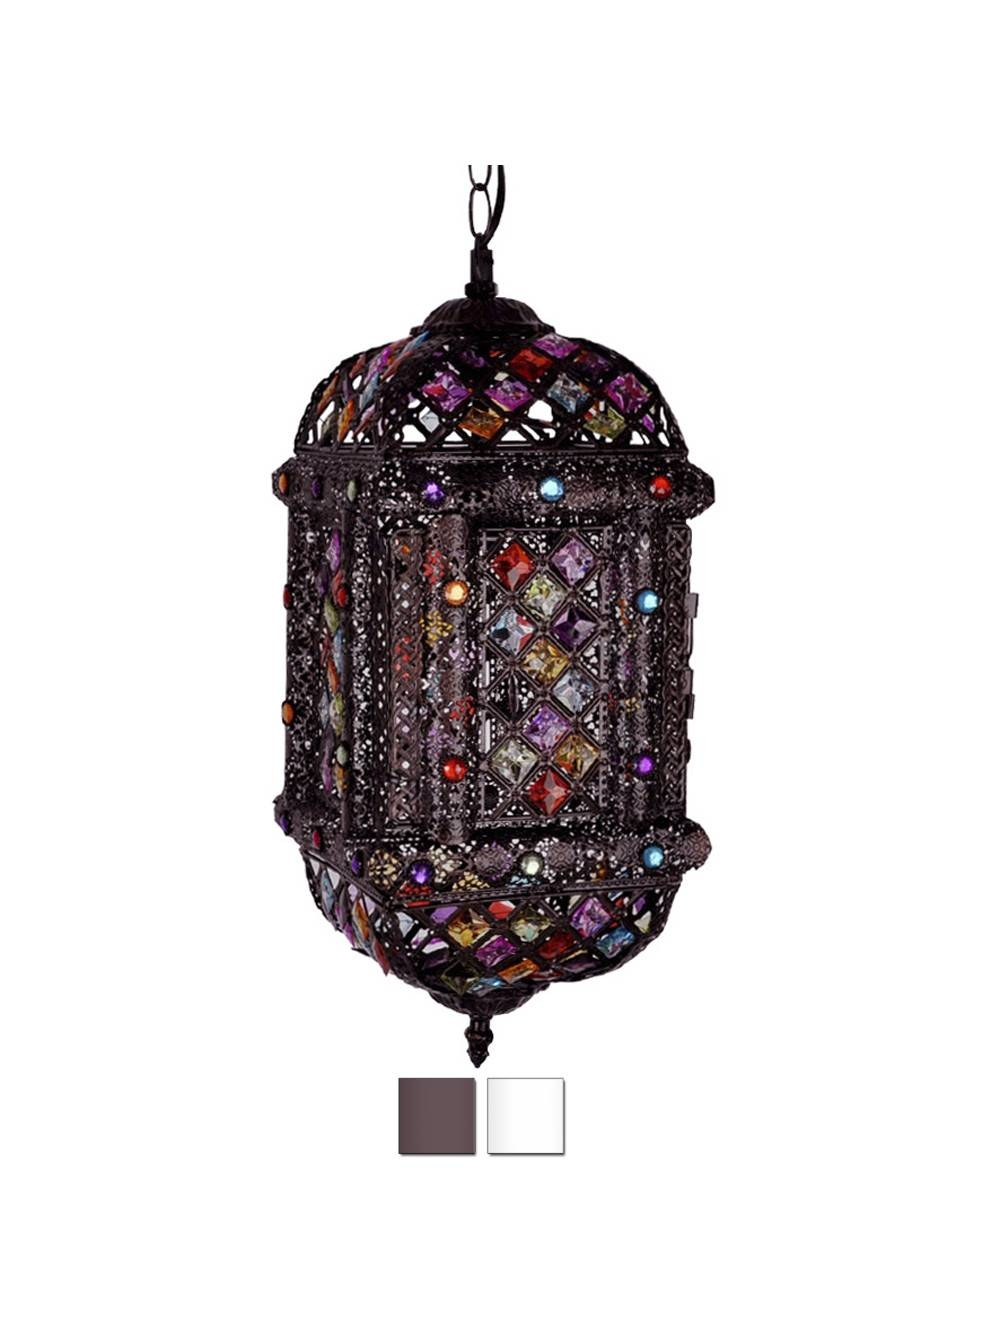 Moroccan Style Lantern In Painted Satin Finish With Acrylic Jewel intended for Moroccan Style Pendant Ceiling Lights (Image 11 of 15)